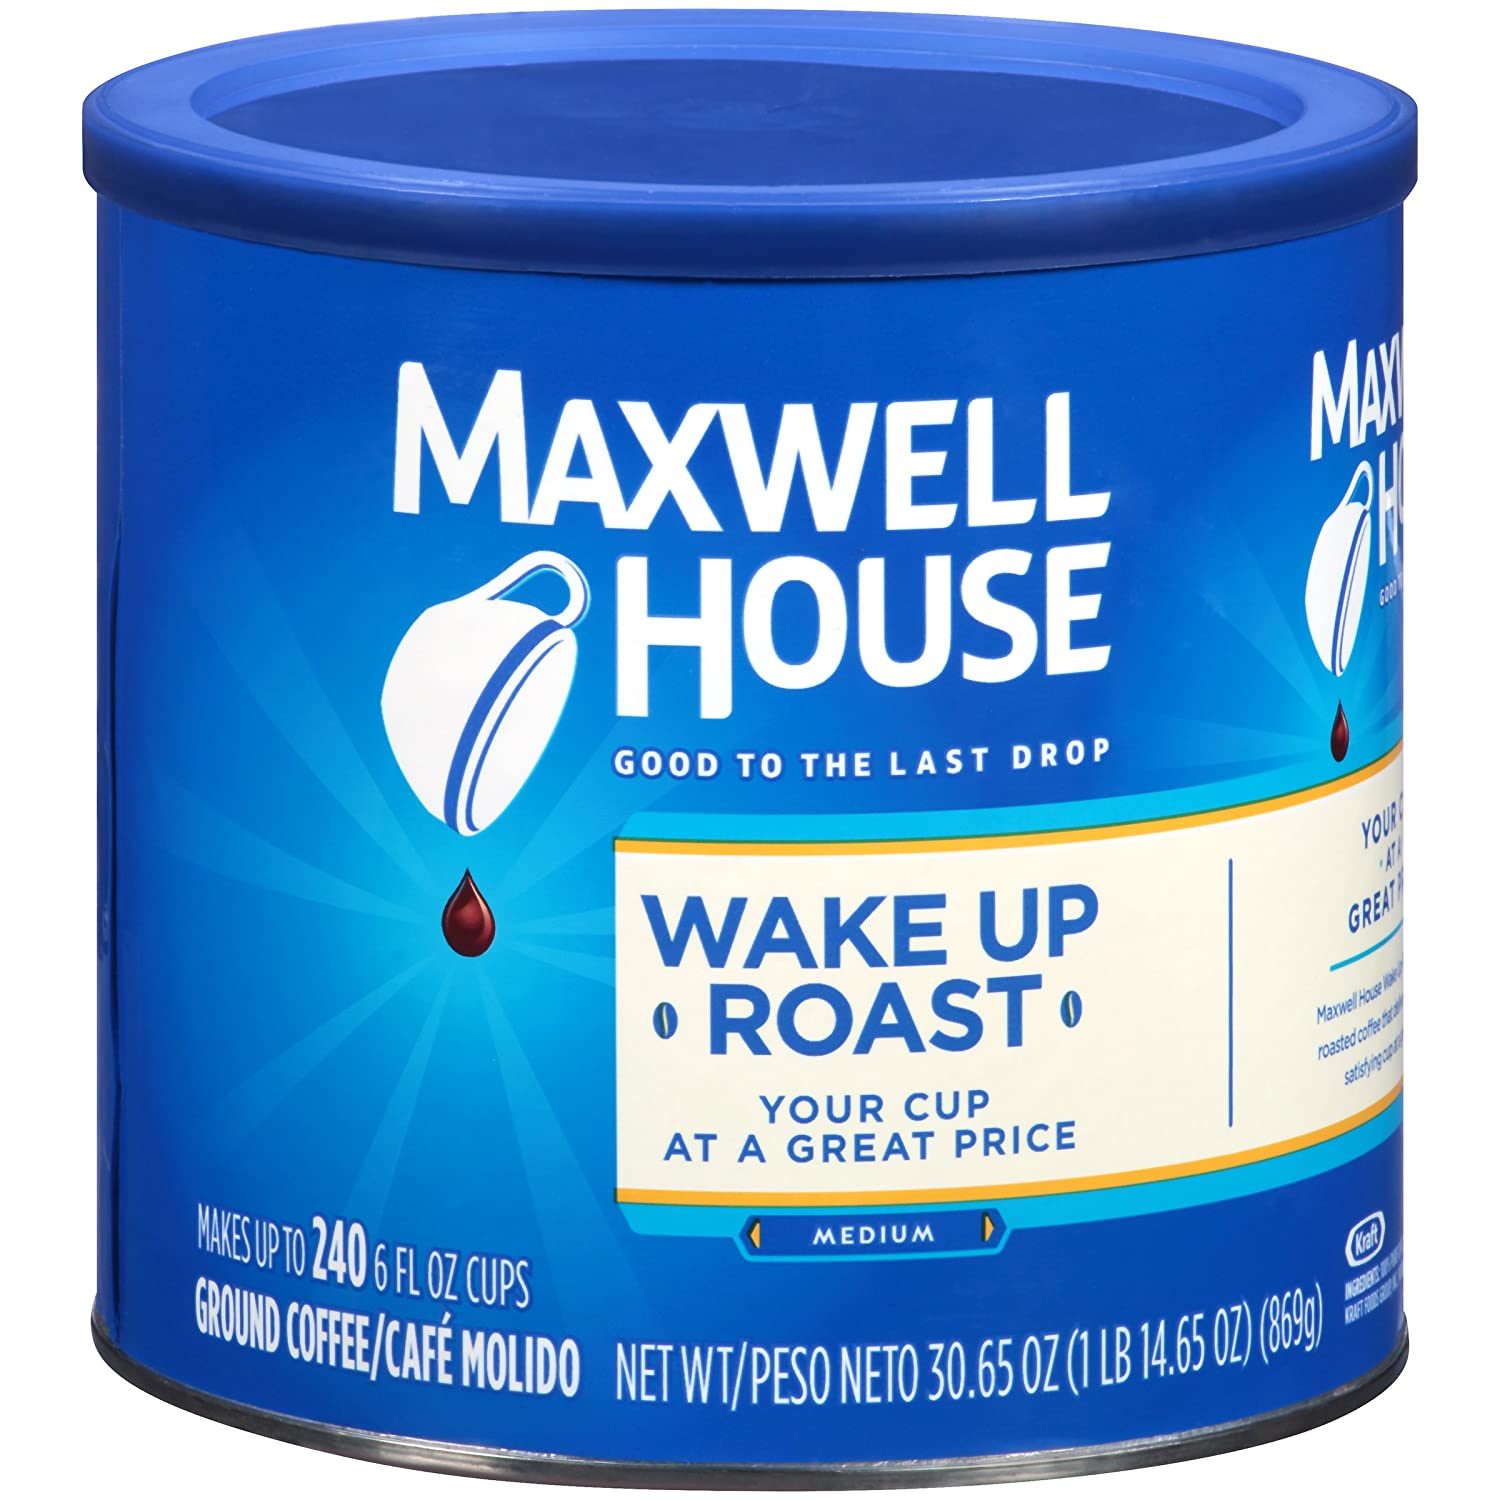 Maxwell House Wake Up Roast Medium Ground Coffee, Caffeinated, 30.65 oz Can